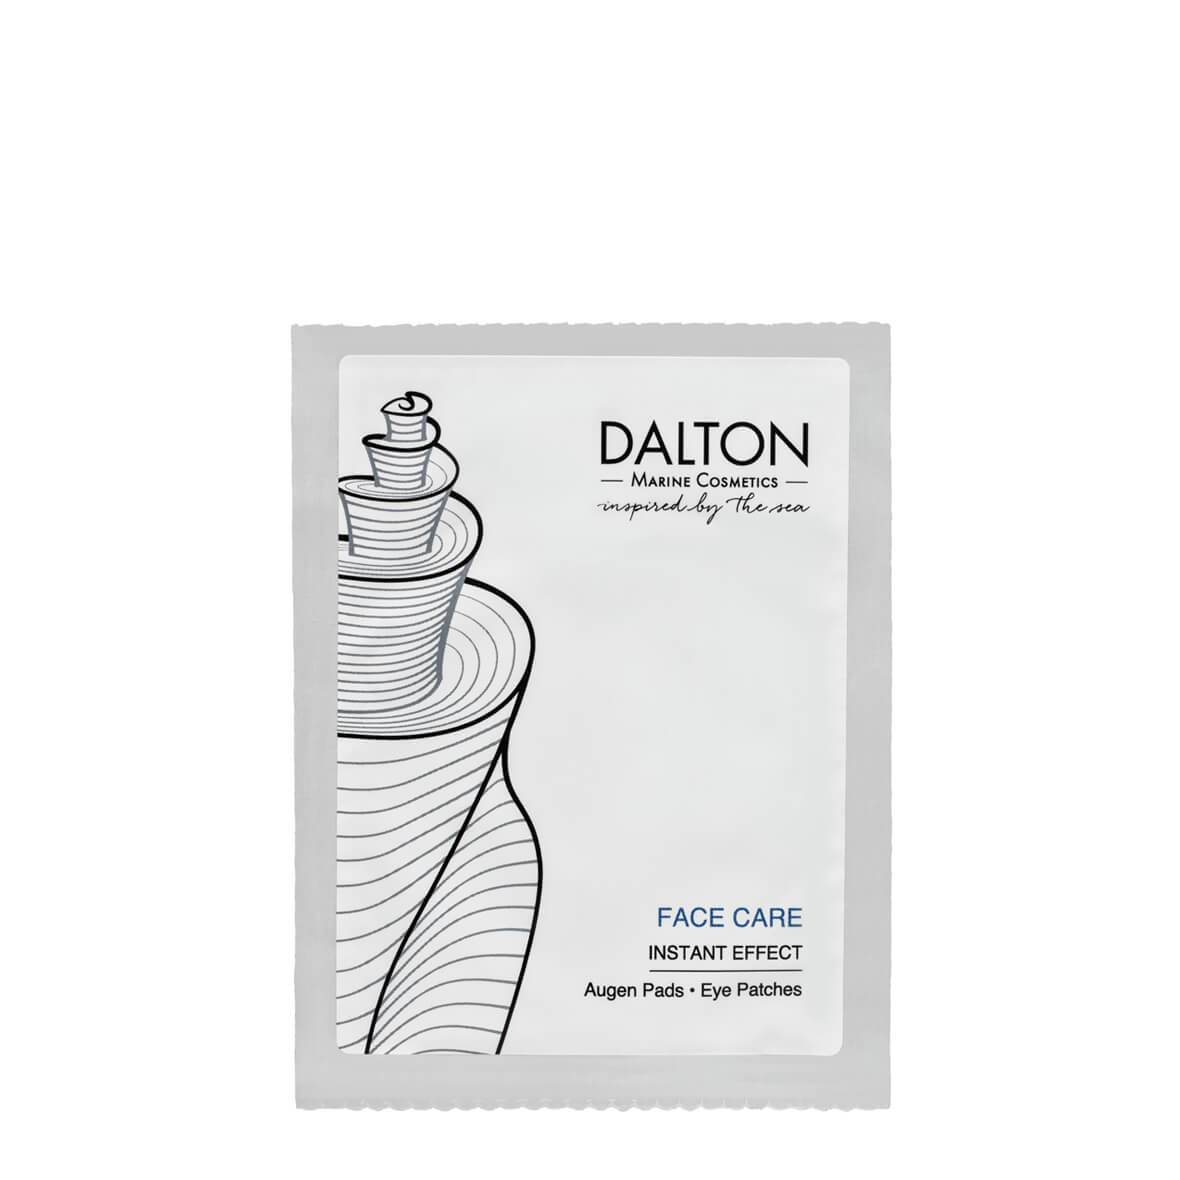 Mască, Face Care Eye Patches 1 plic. x 2 plasturi, Dalton Marine Cosmetics, Era Cosmetics